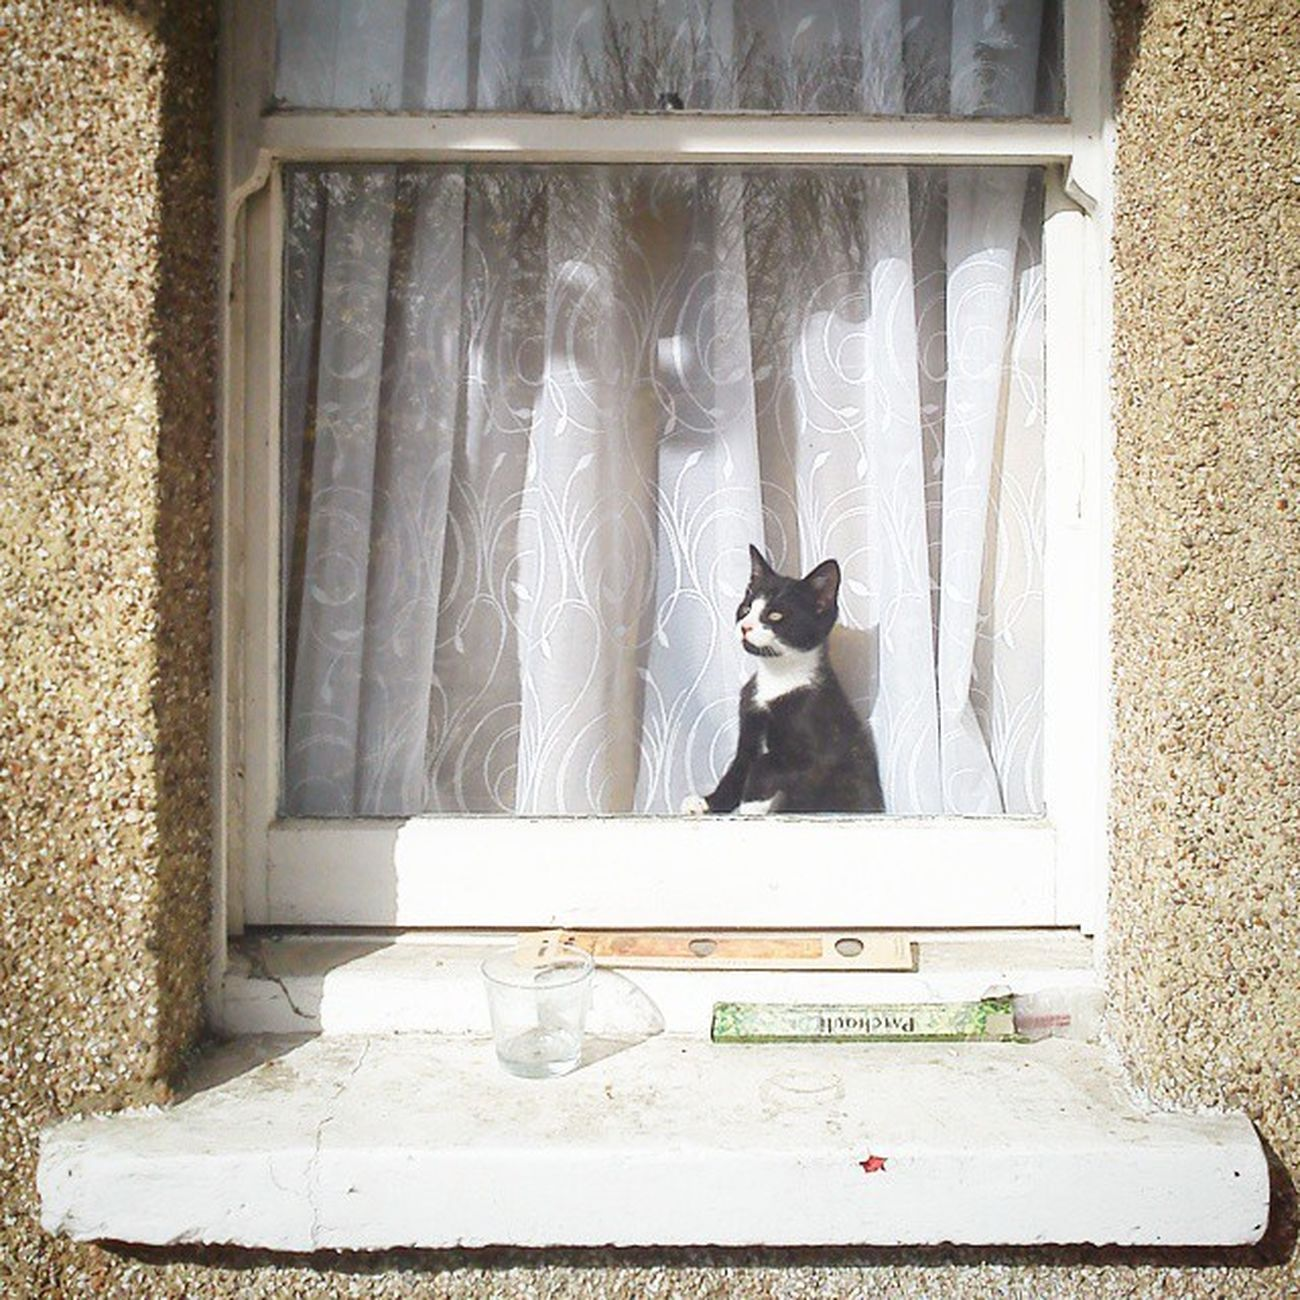 Cat Kitten Tuxedocat Windowsill Whereareyou Onthelookout Areyouhomeyet